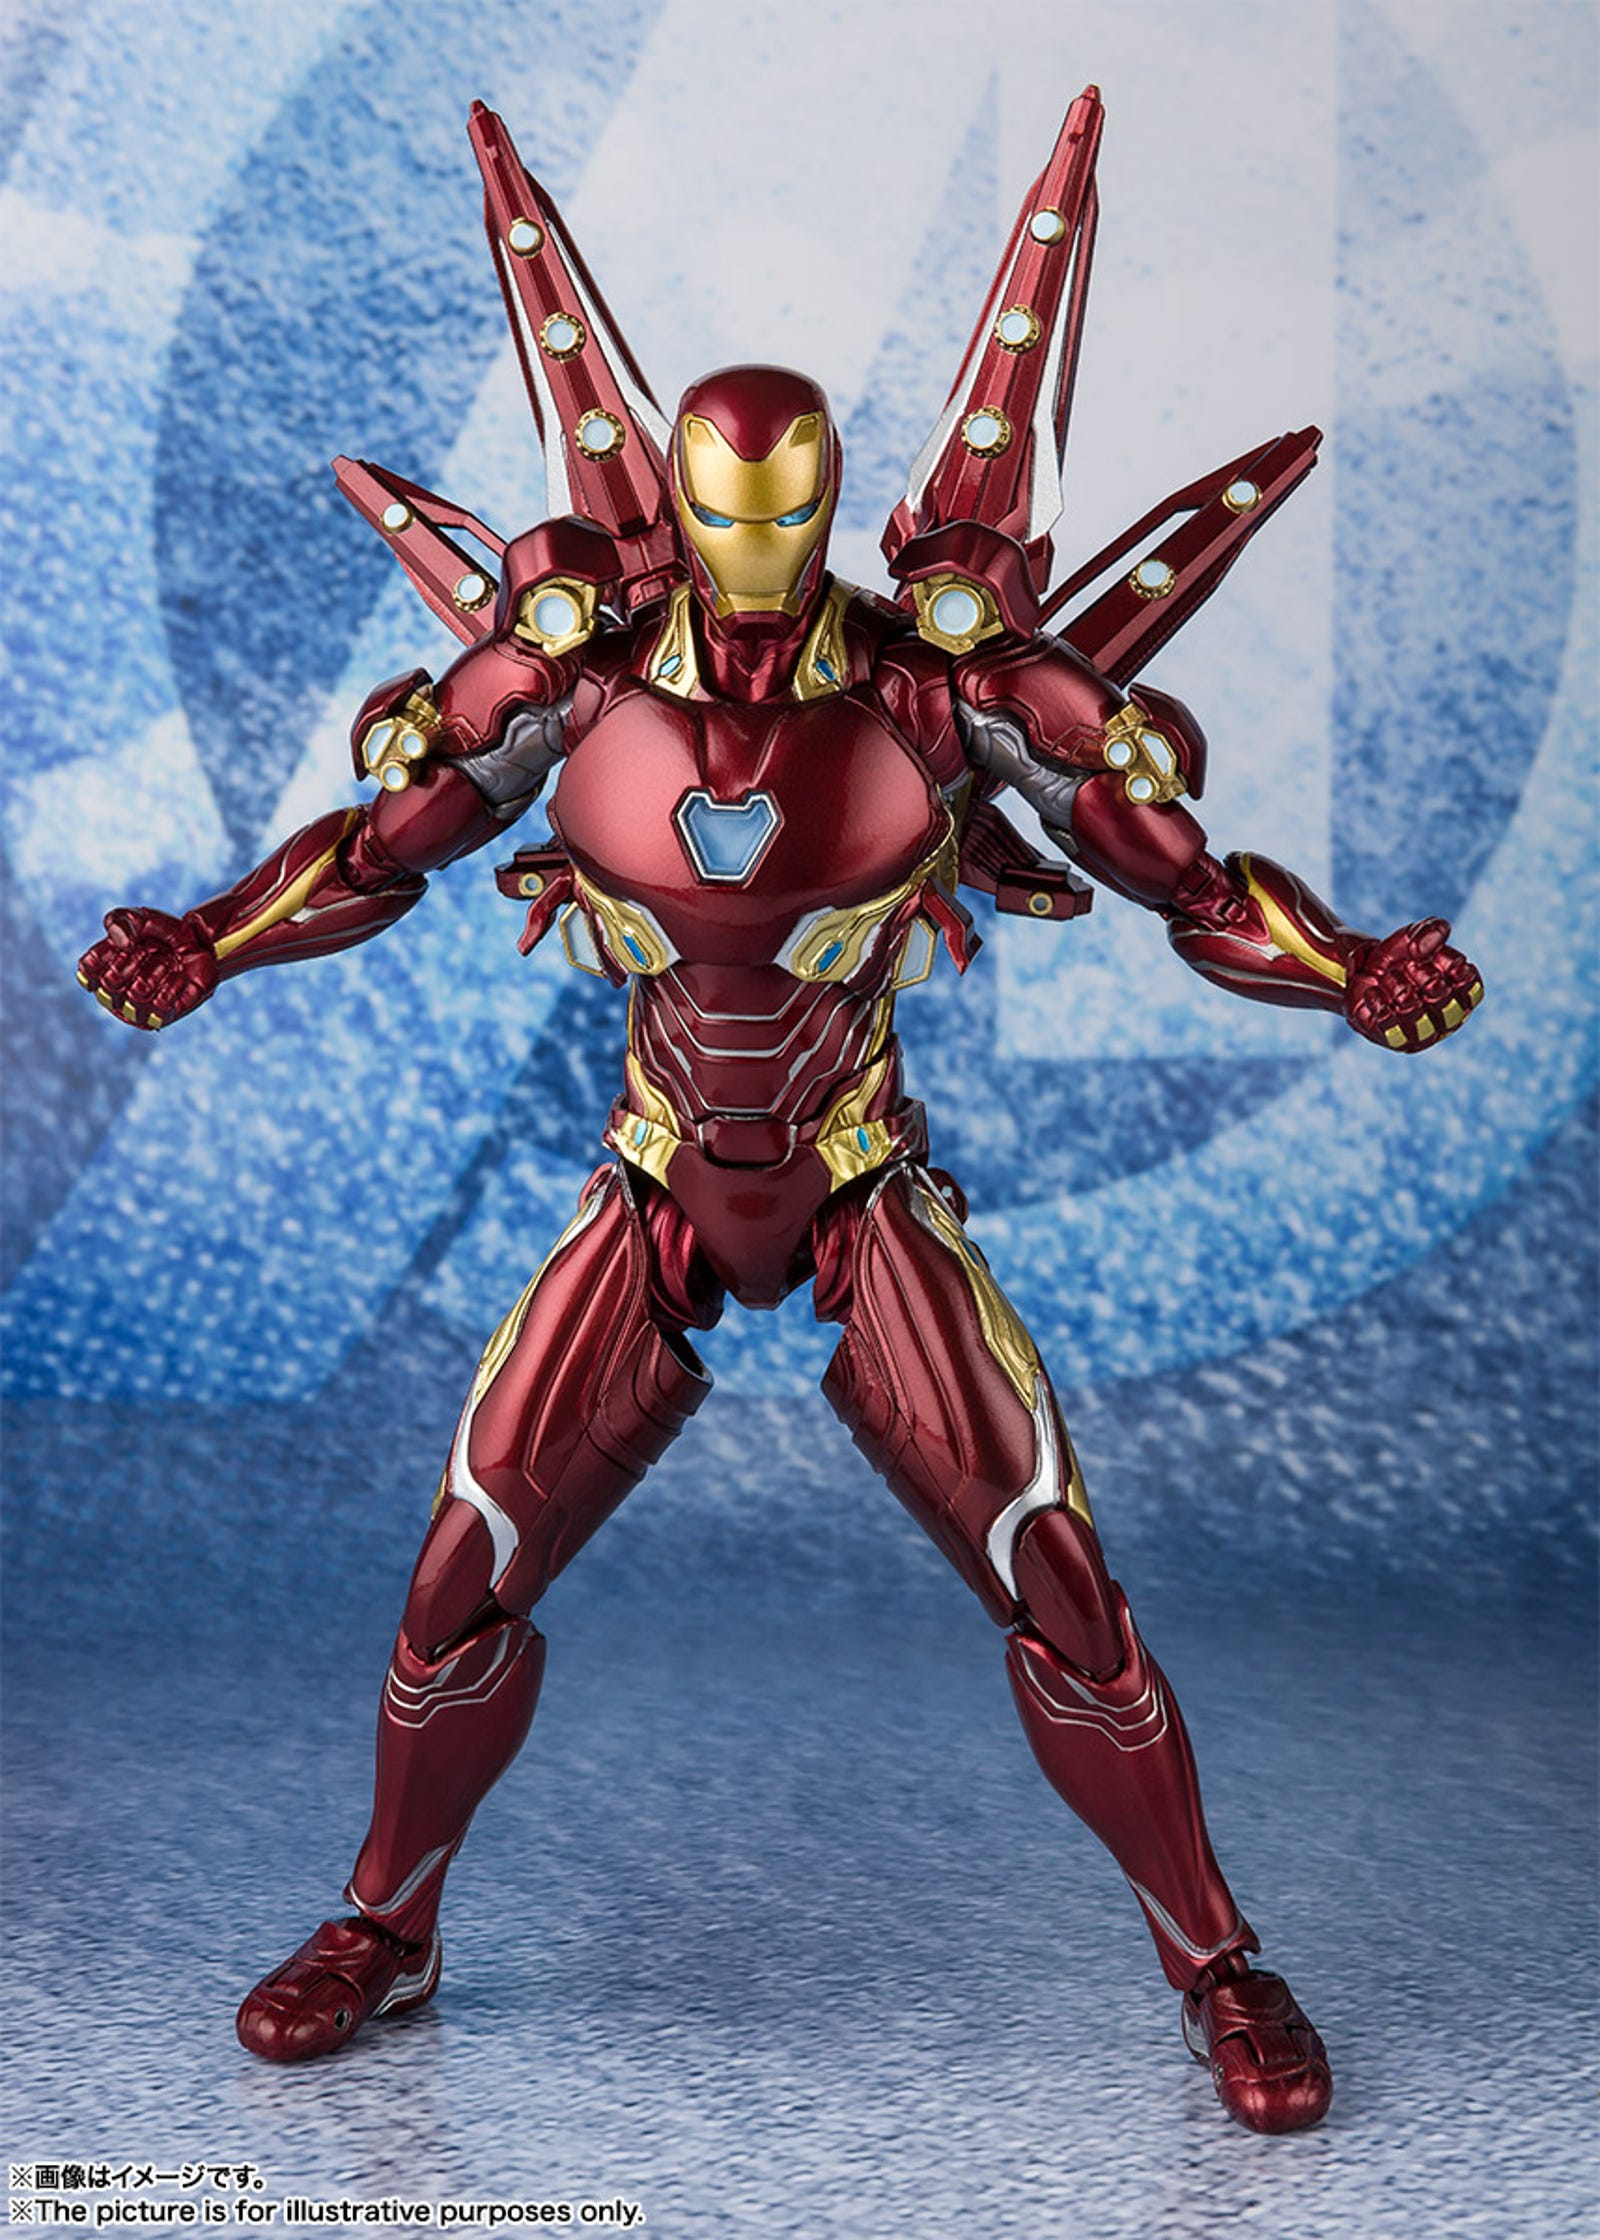 Iron Man will also set you back around $58 in June.